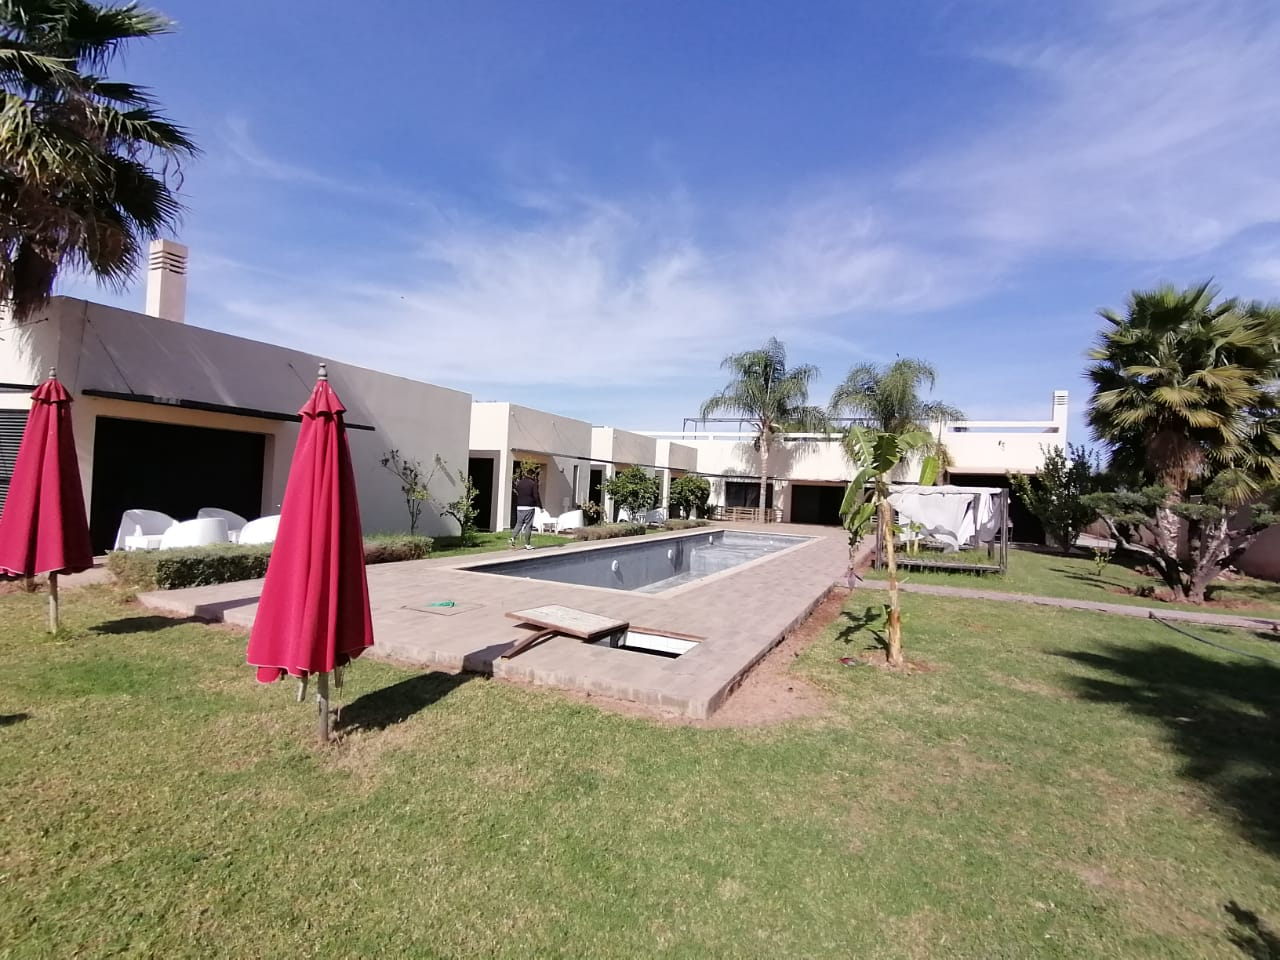 Fantastic 5-bedroom house for rent in Marrakech